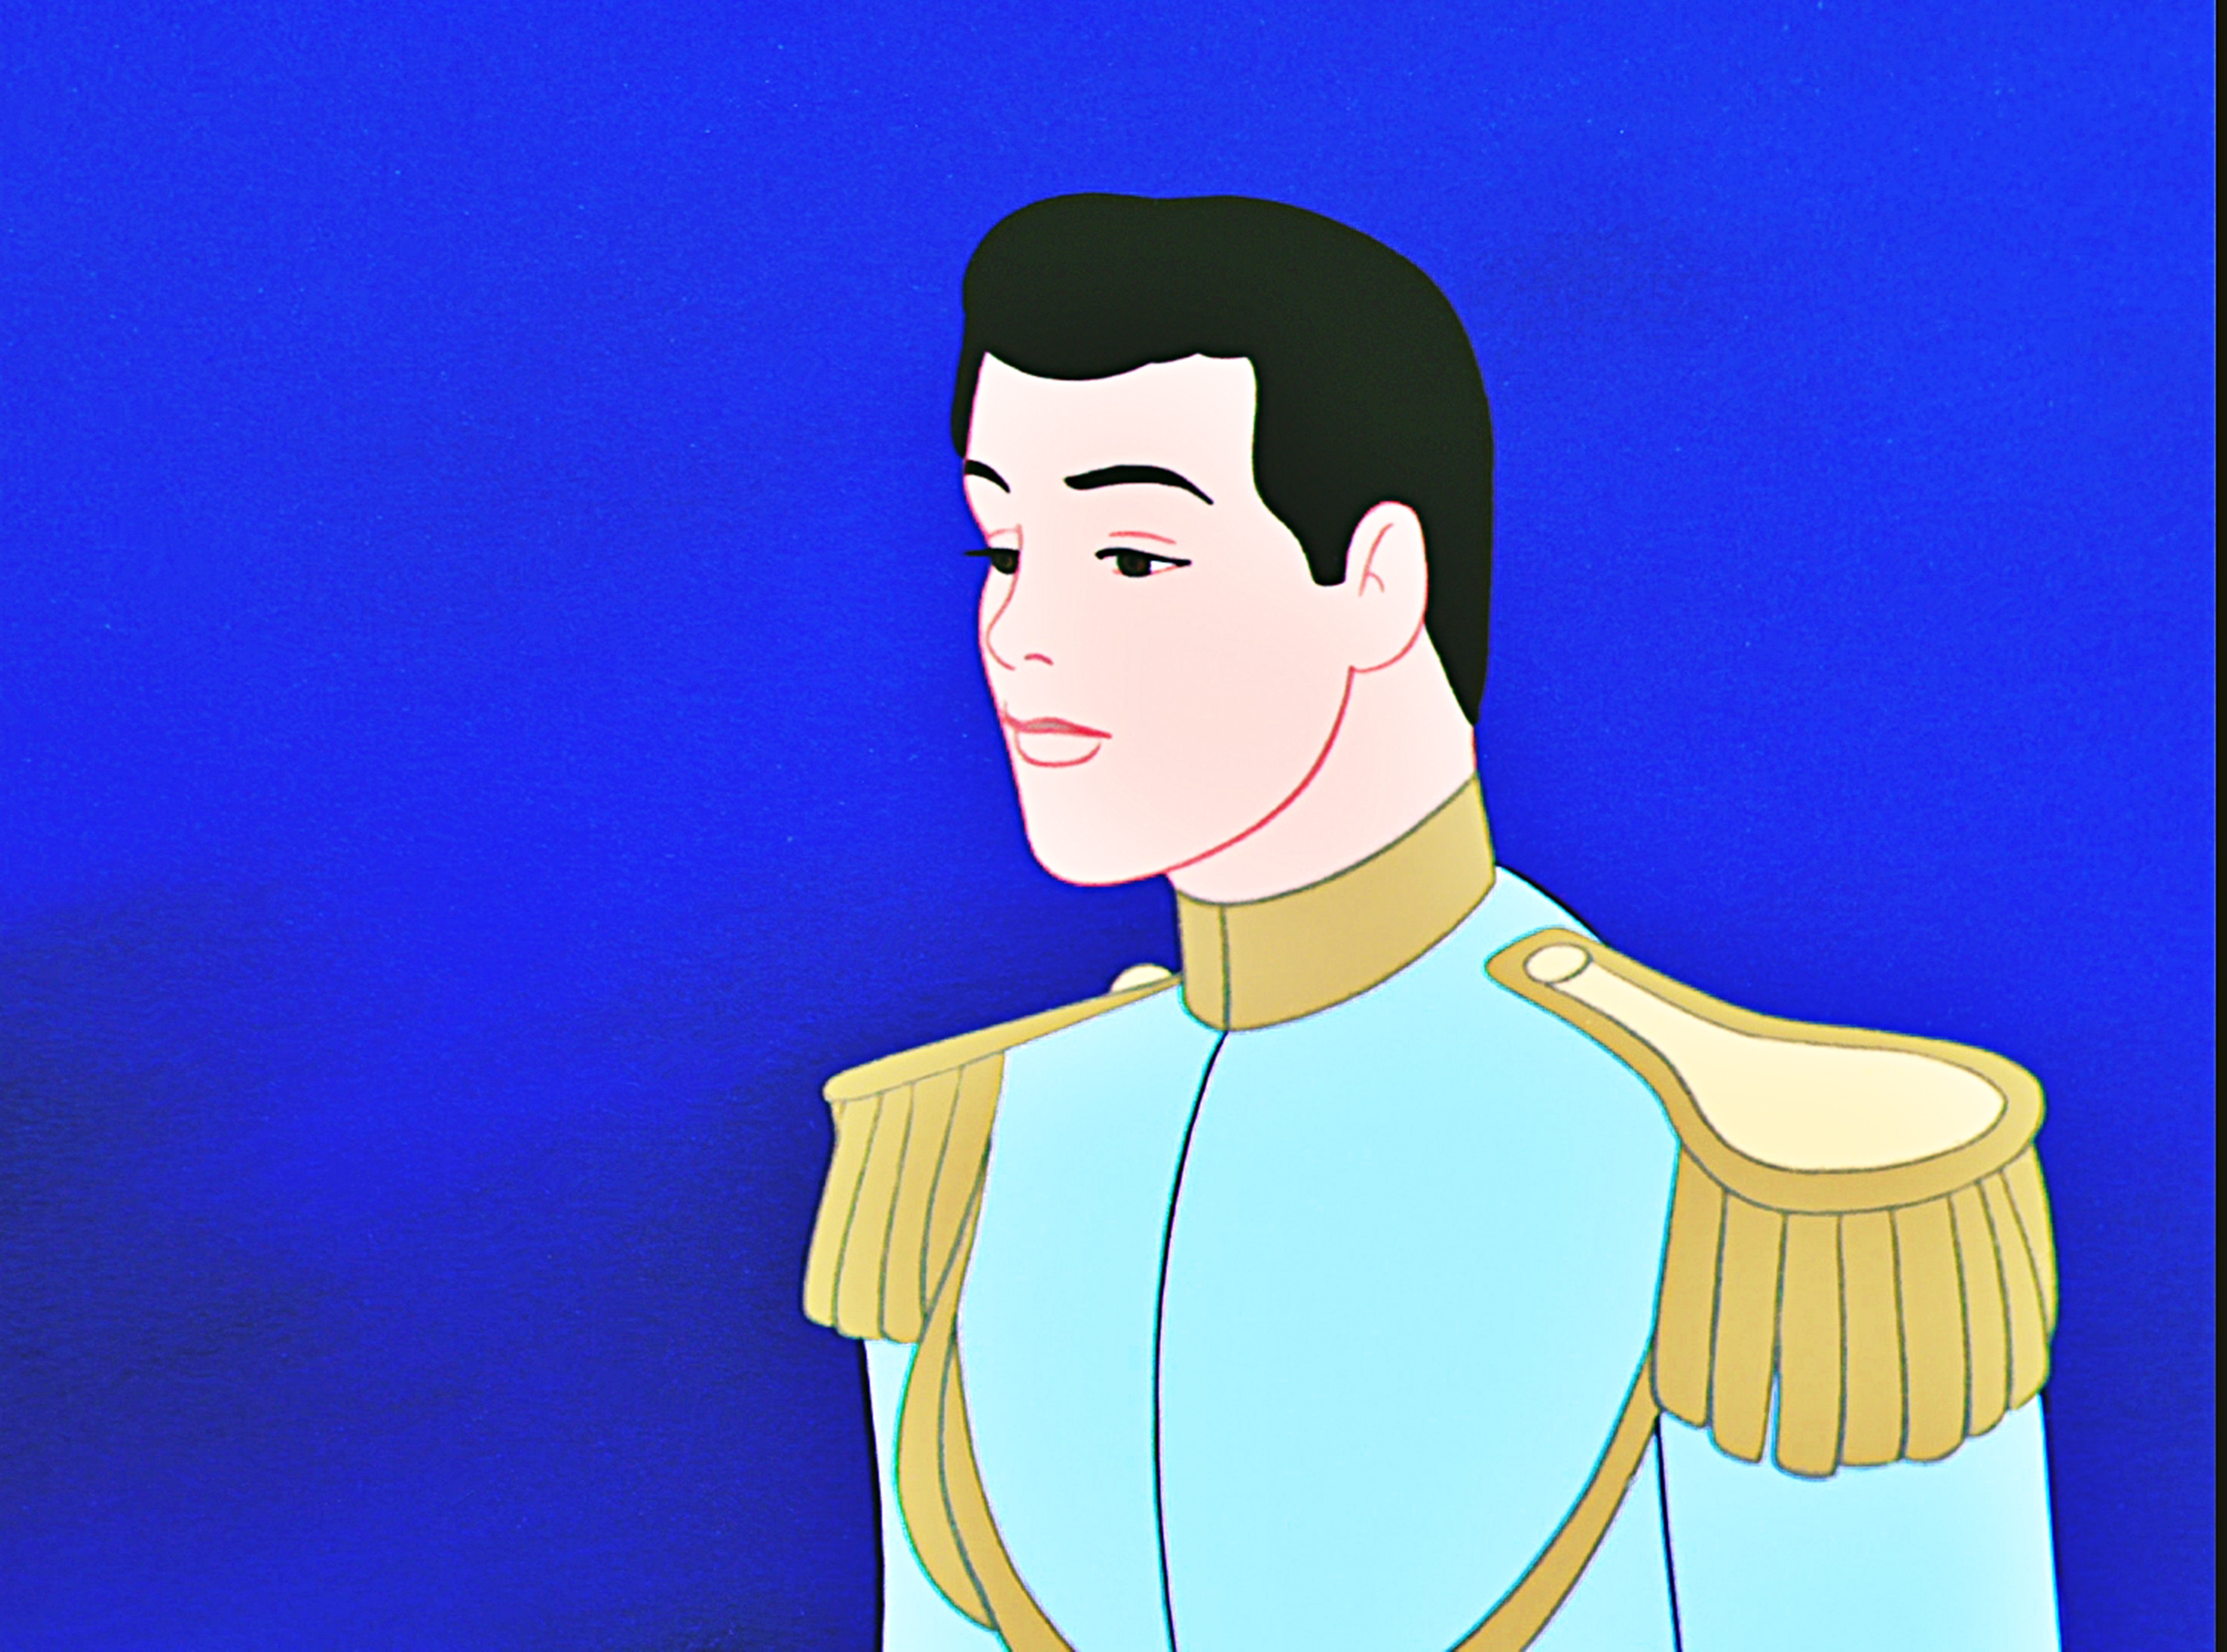 where do you think prince charming looks the most handsome